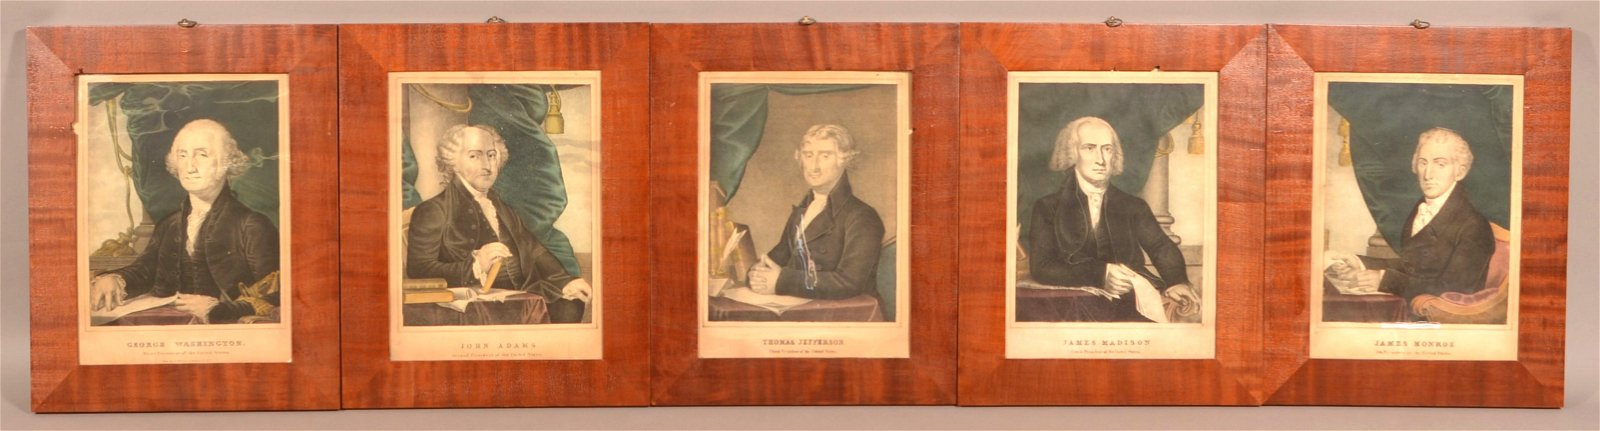 Set of Ten N. Currier Presidents Color Lithographs.